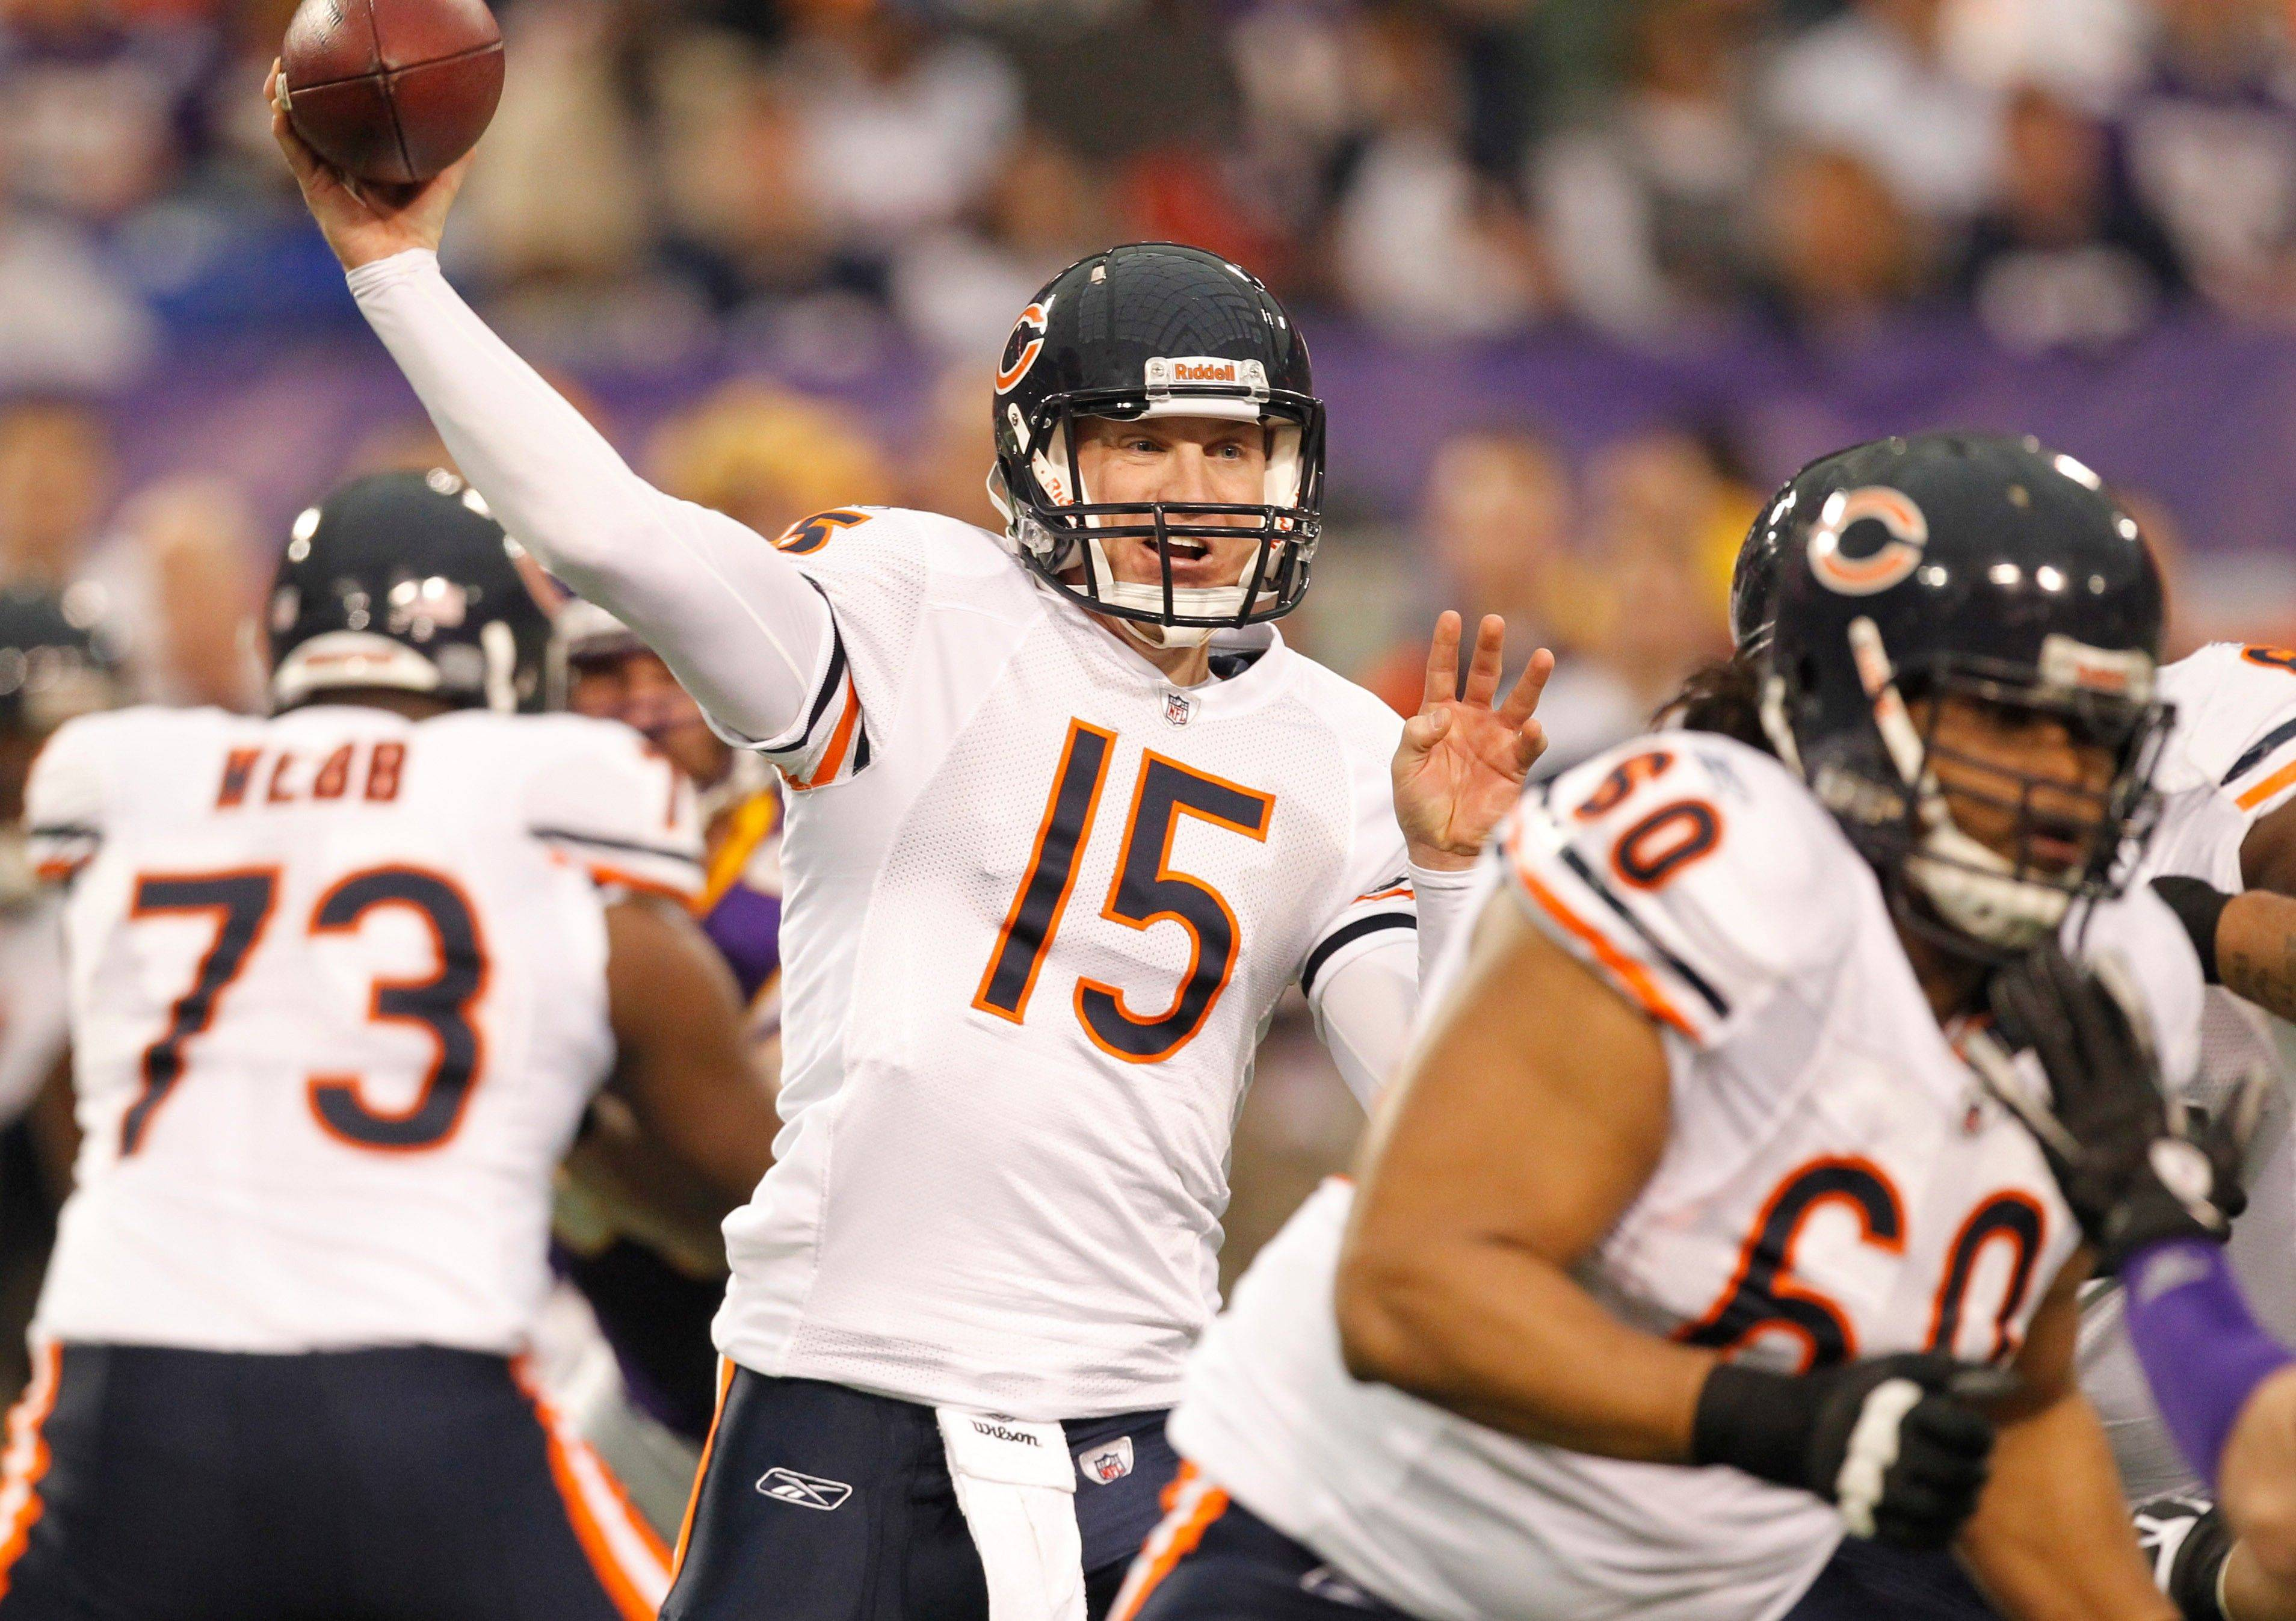 Chicago Bears quarterback Josh McCown throws a pass in the first half.